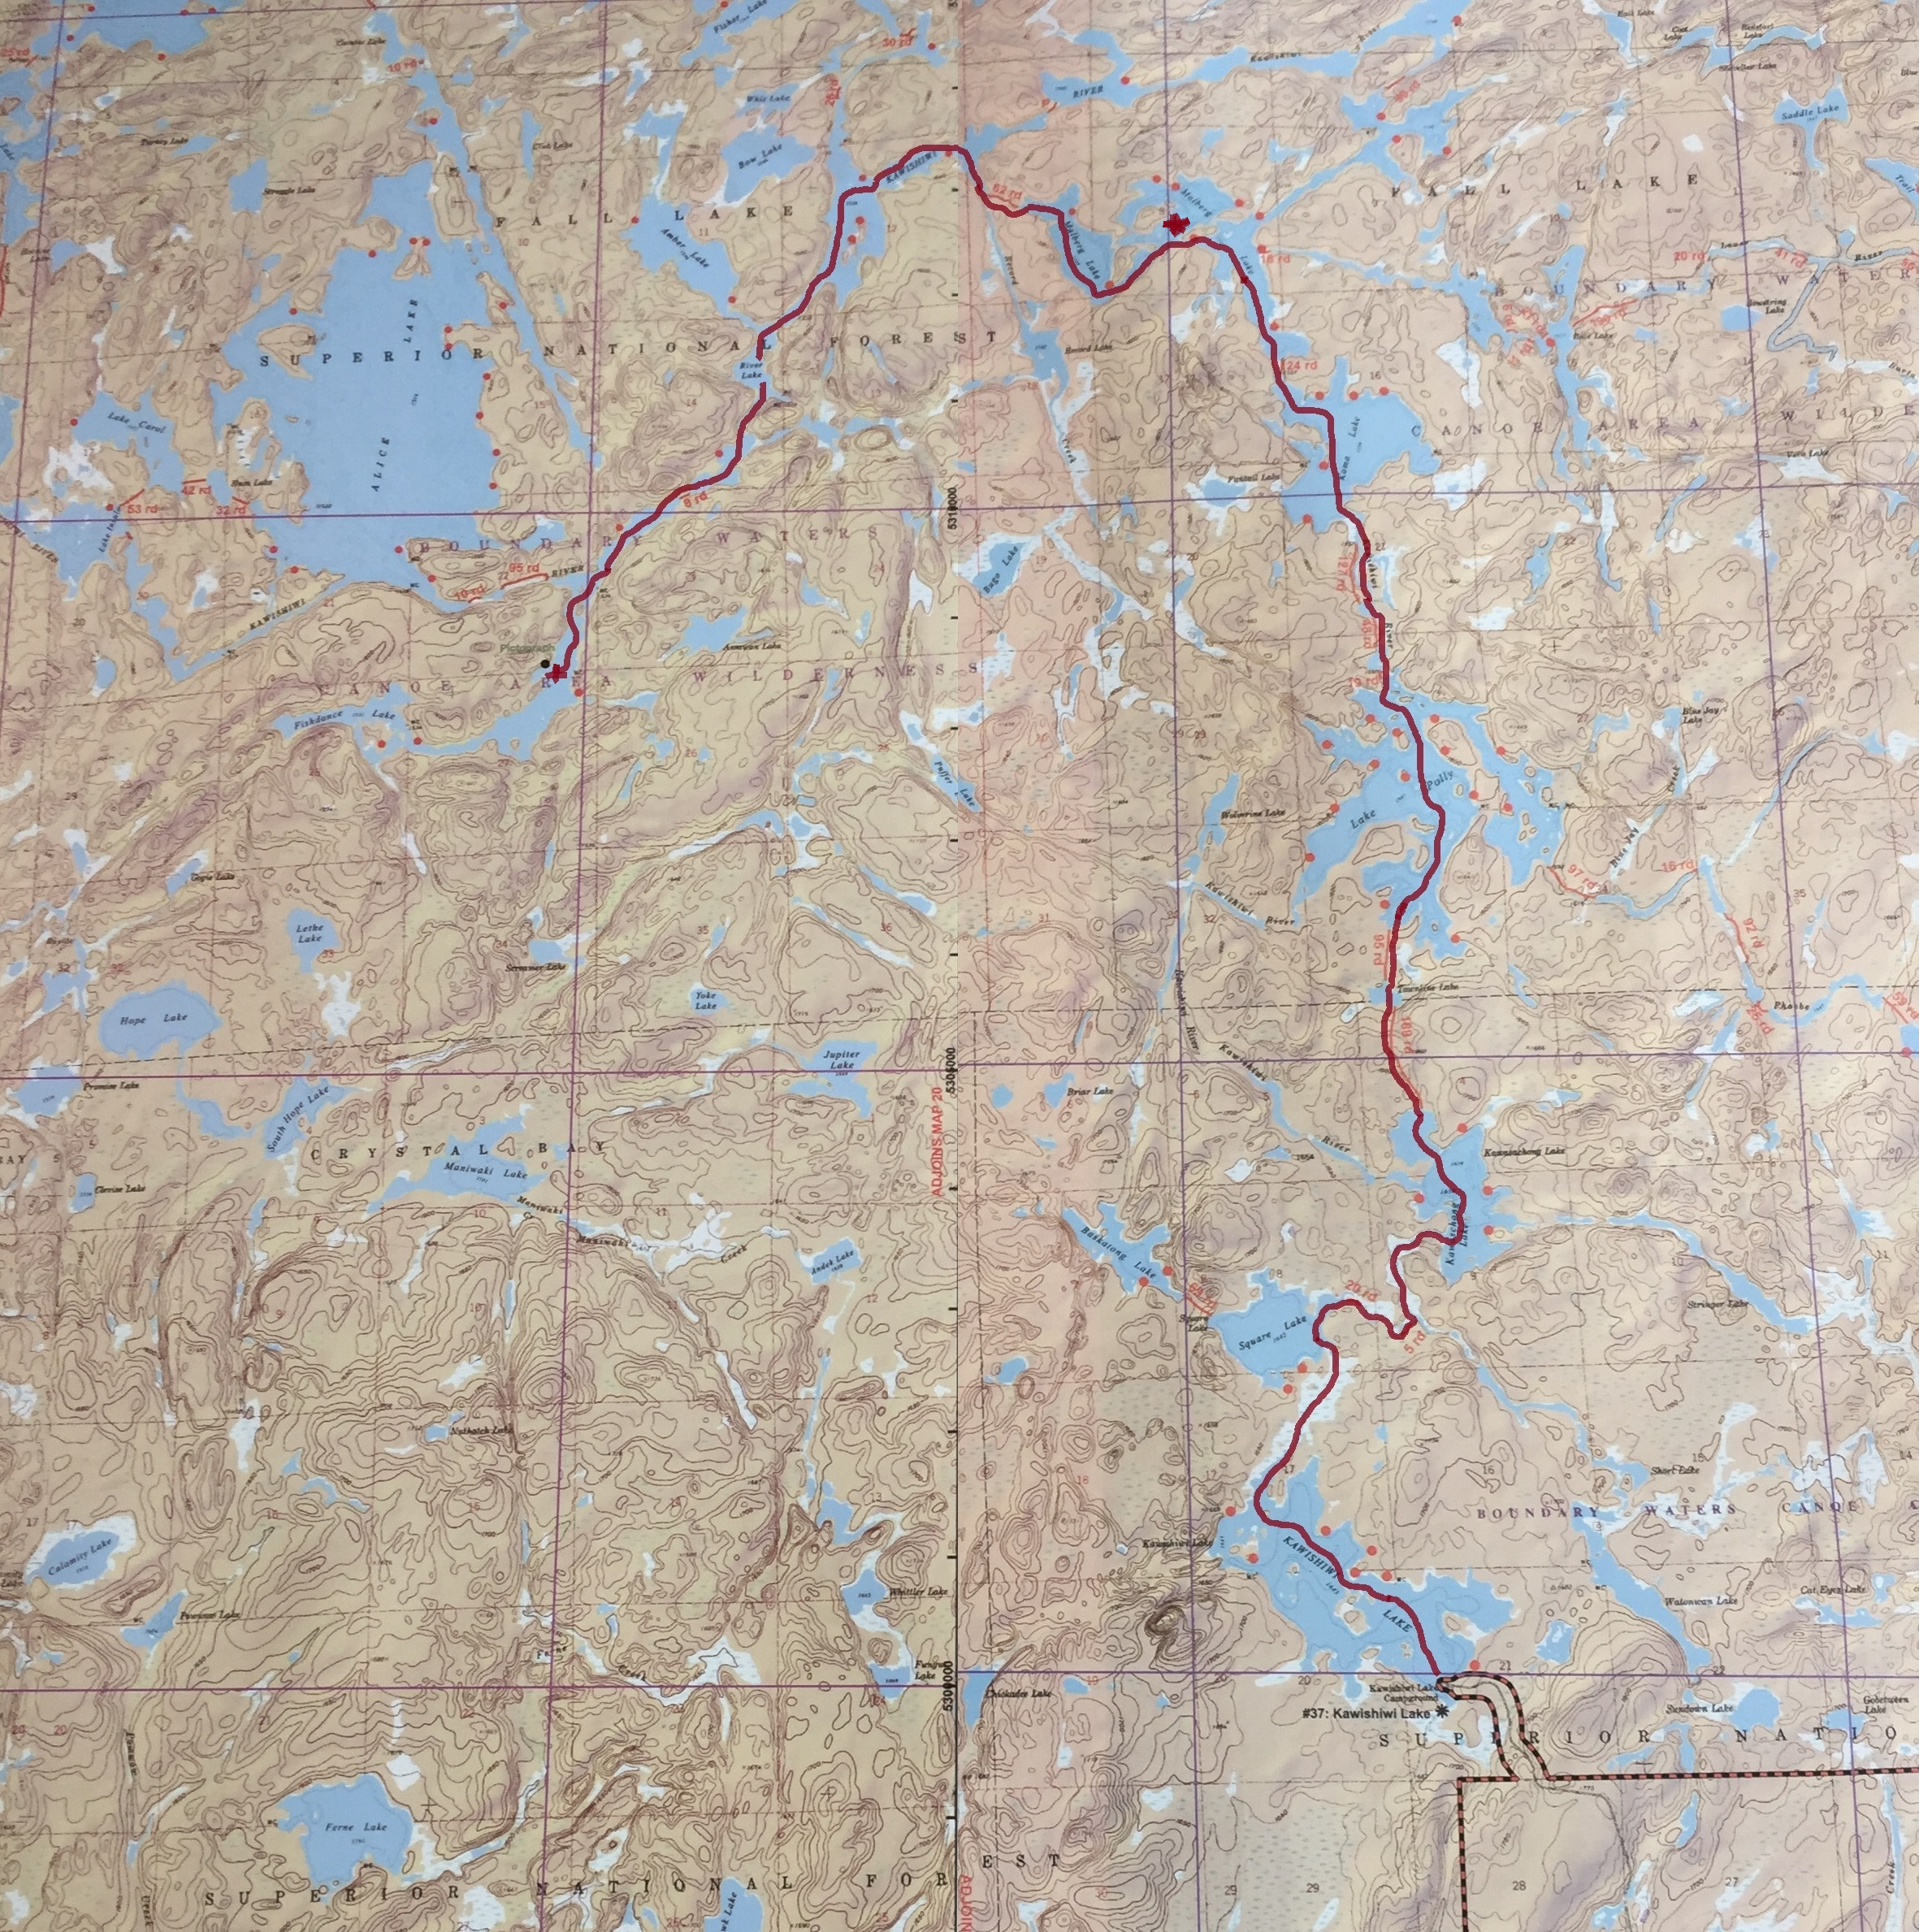 boundary waters canoe area wilderness kawishiwi maulburg polly pagami creek fire bwcaw pictographs kawishiwi river